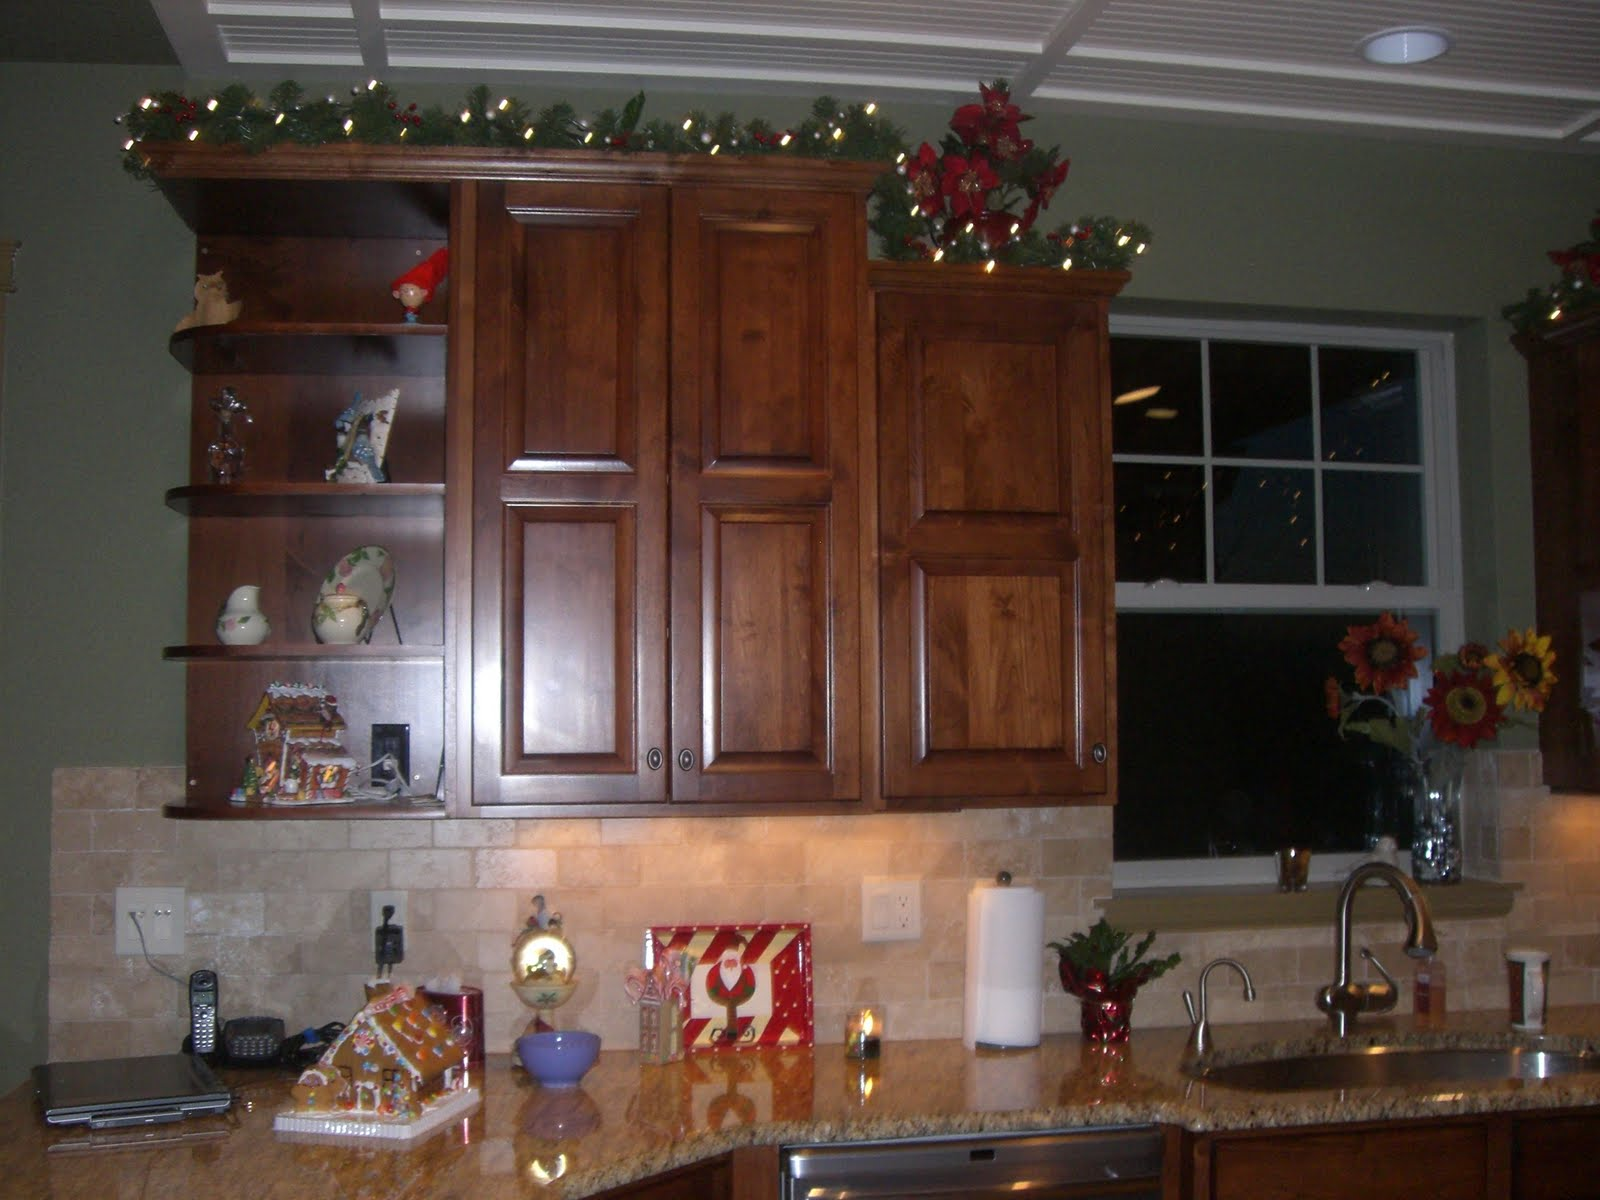 Decorating Kitchen Cabinet Tops Decorating Top Of Kitchen Cabinets For Christmas Best